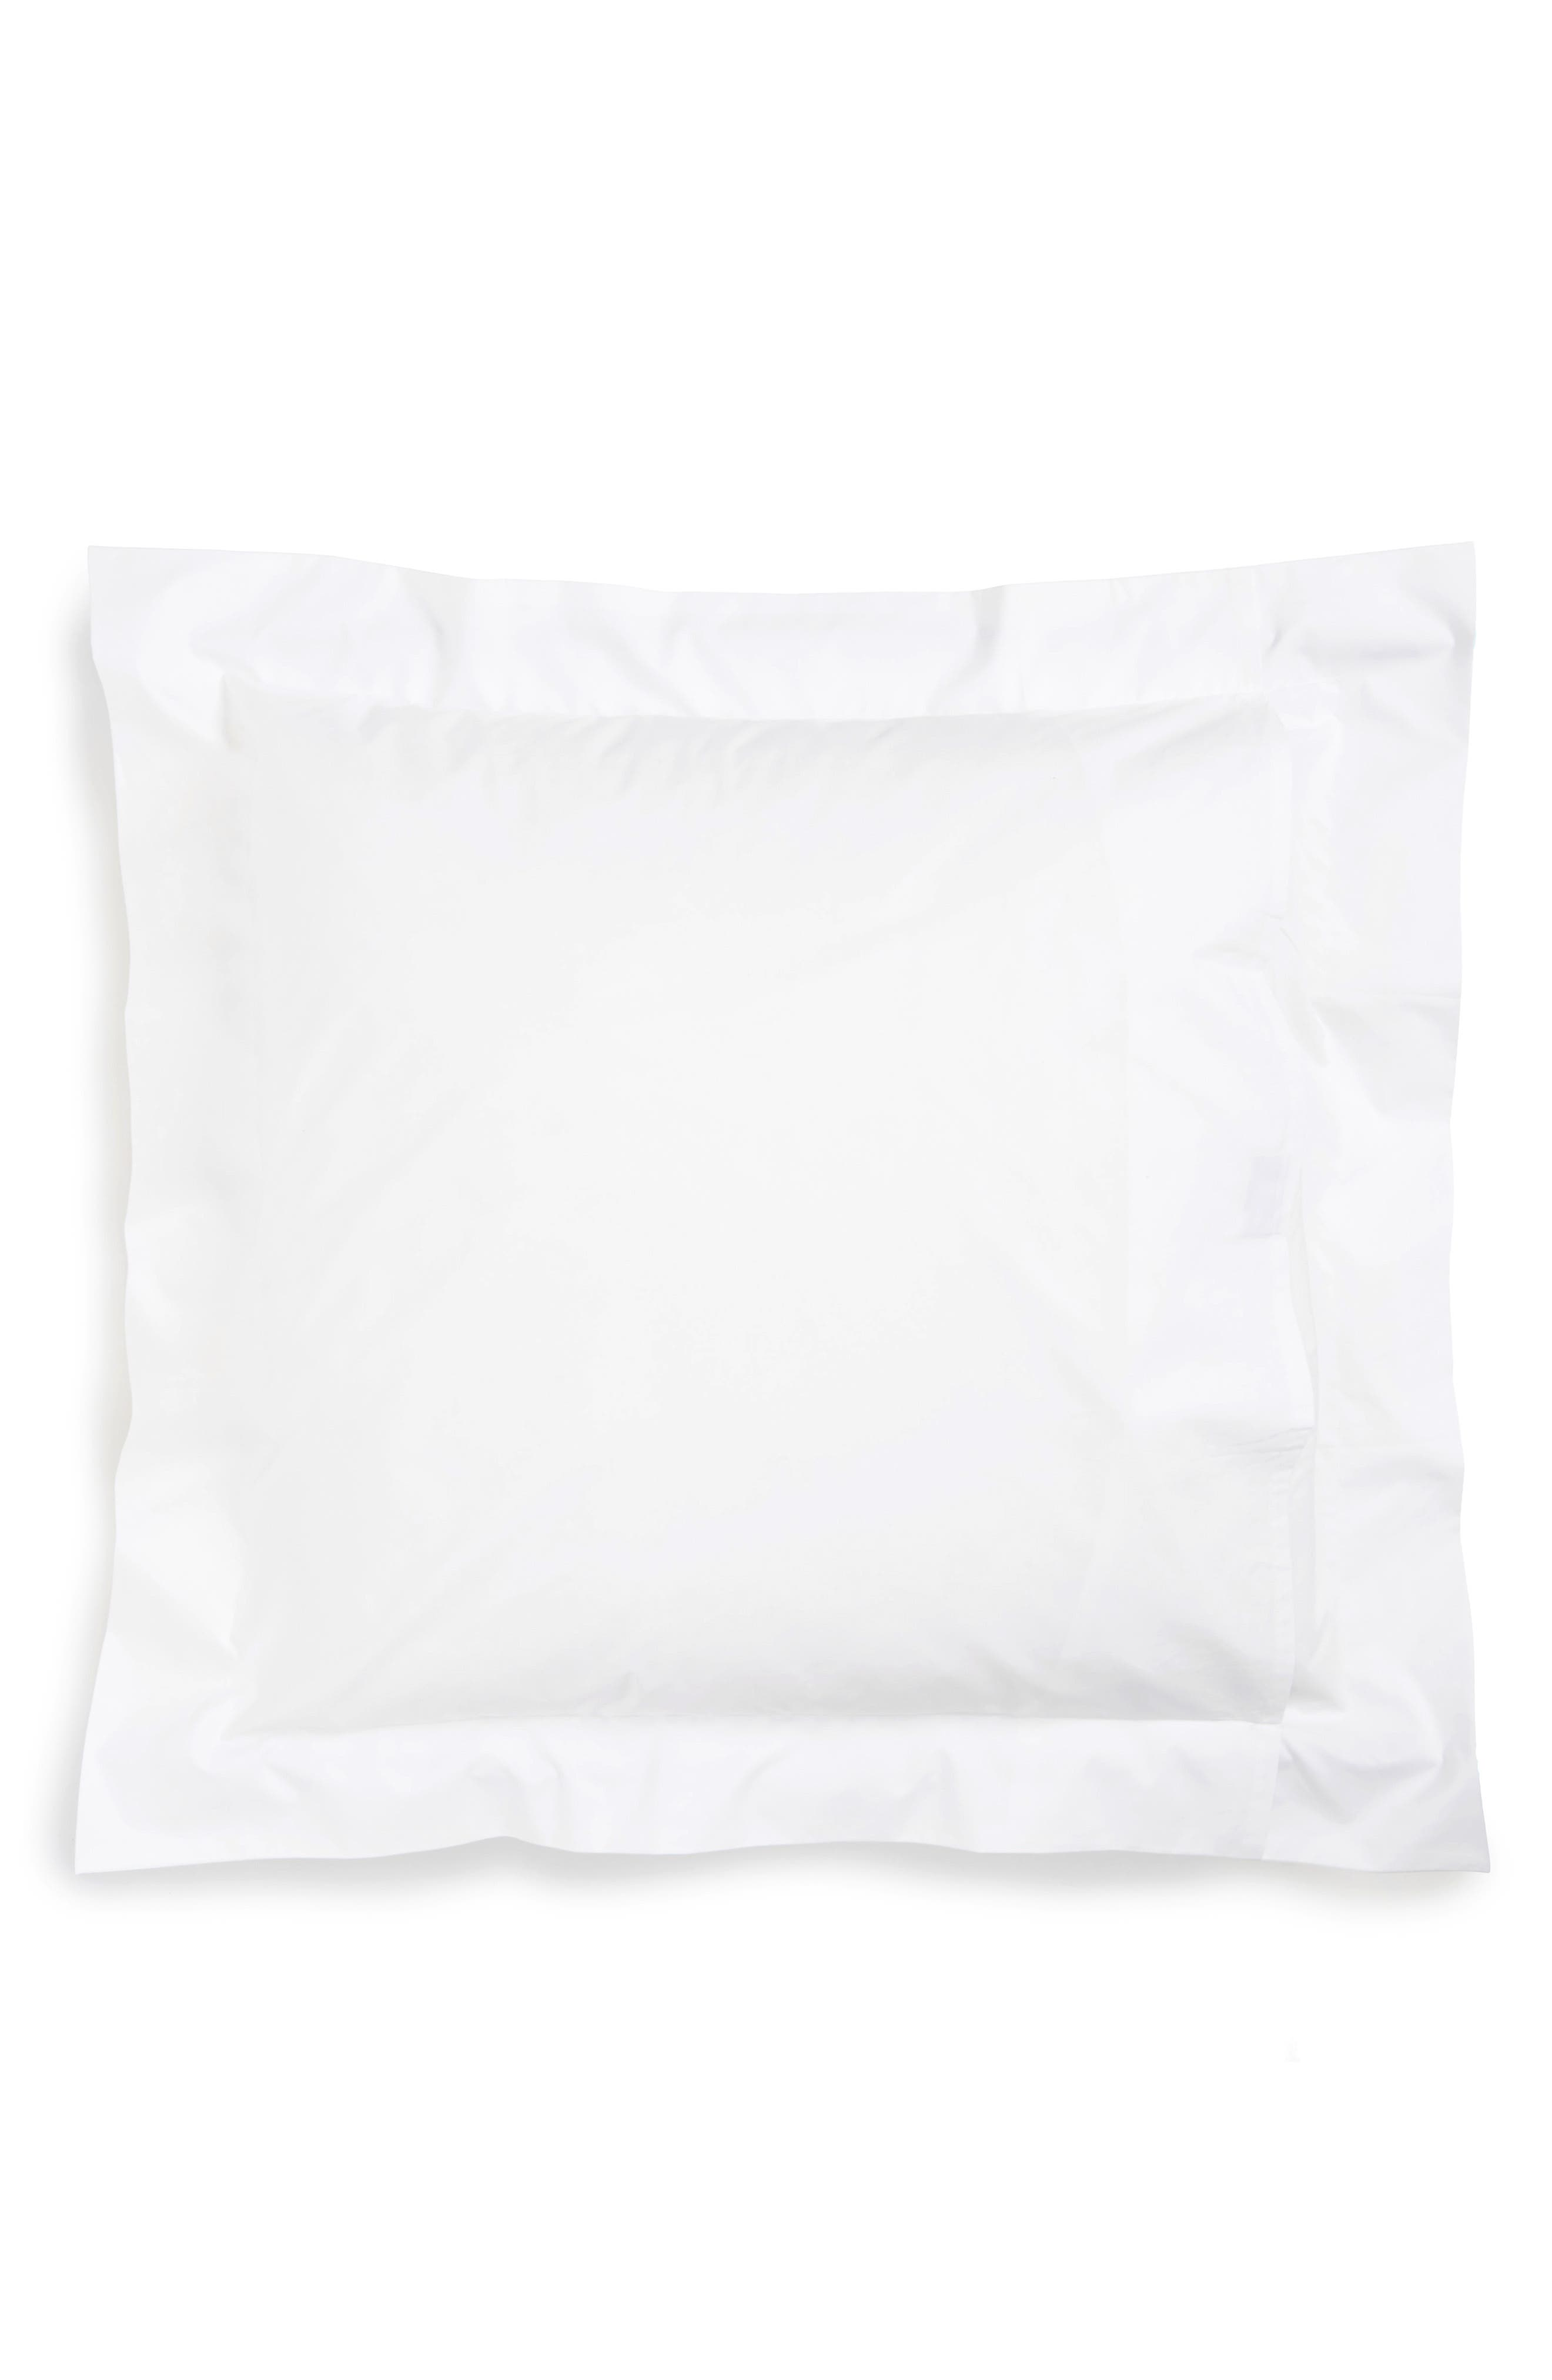 Lowell 600 Thread Count Euro Sham,                             Alternate thumbnail 2, color,                             Silver